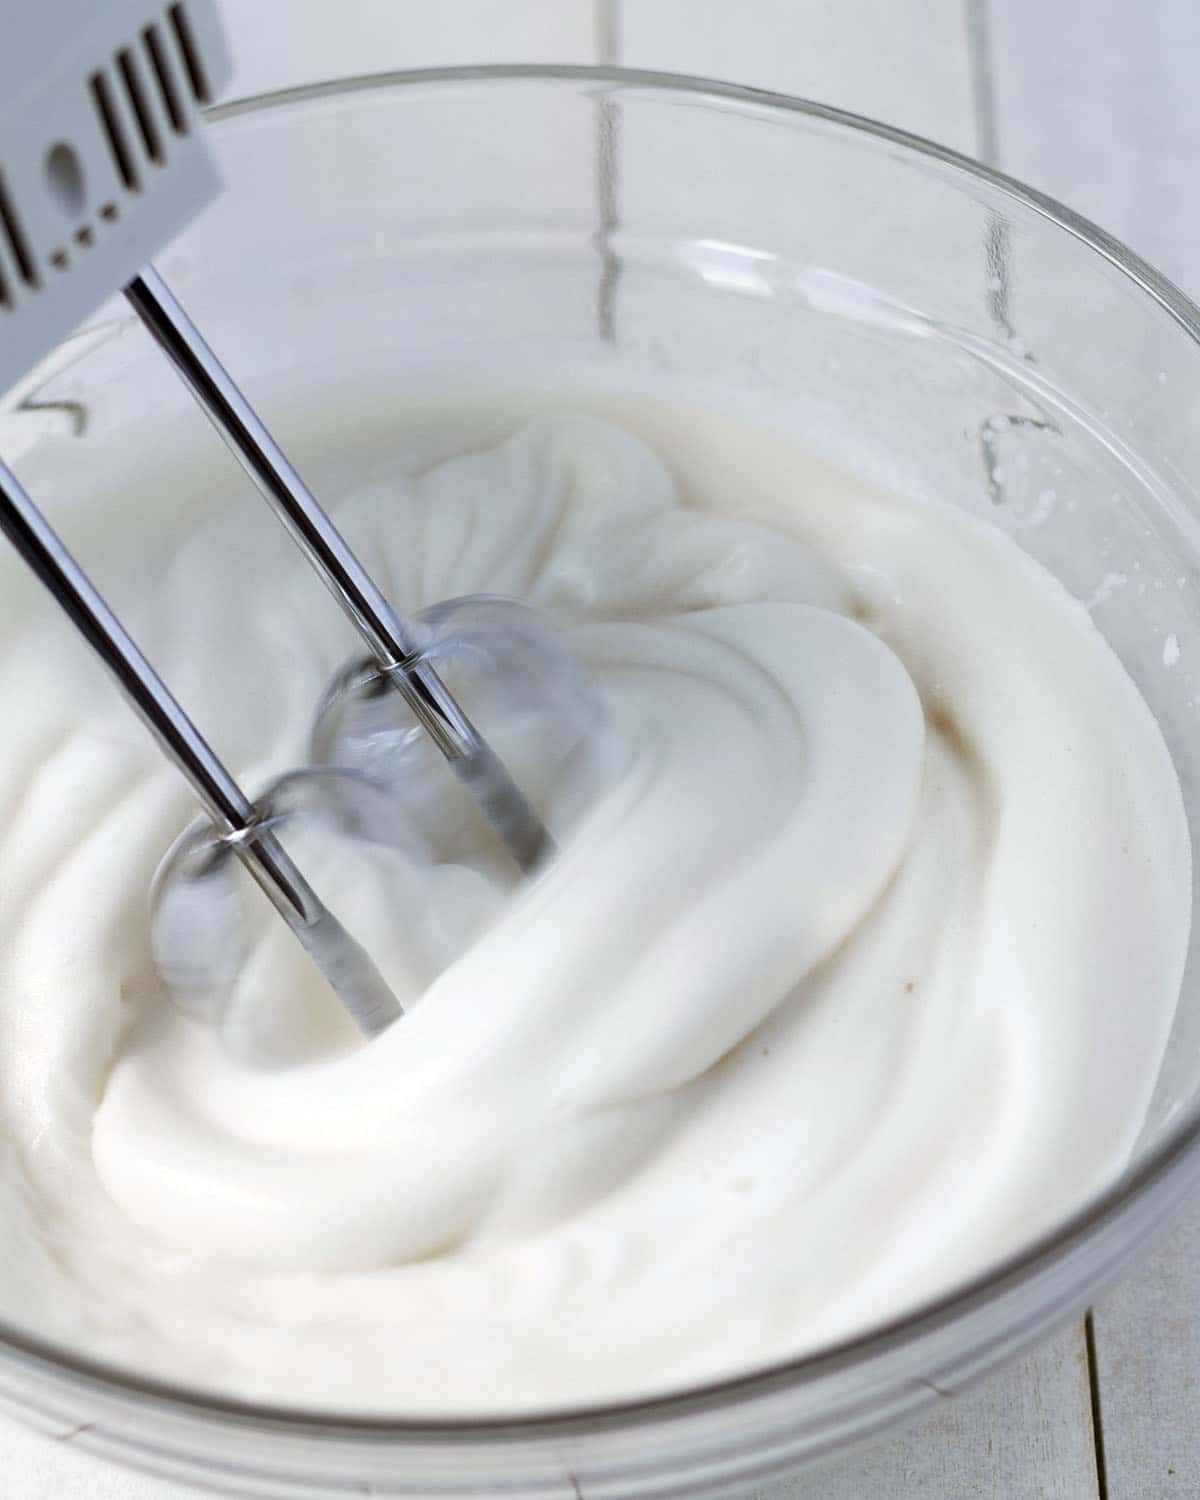 Image shows aquafaba being whipped with a hand mixer in a glass bowl.